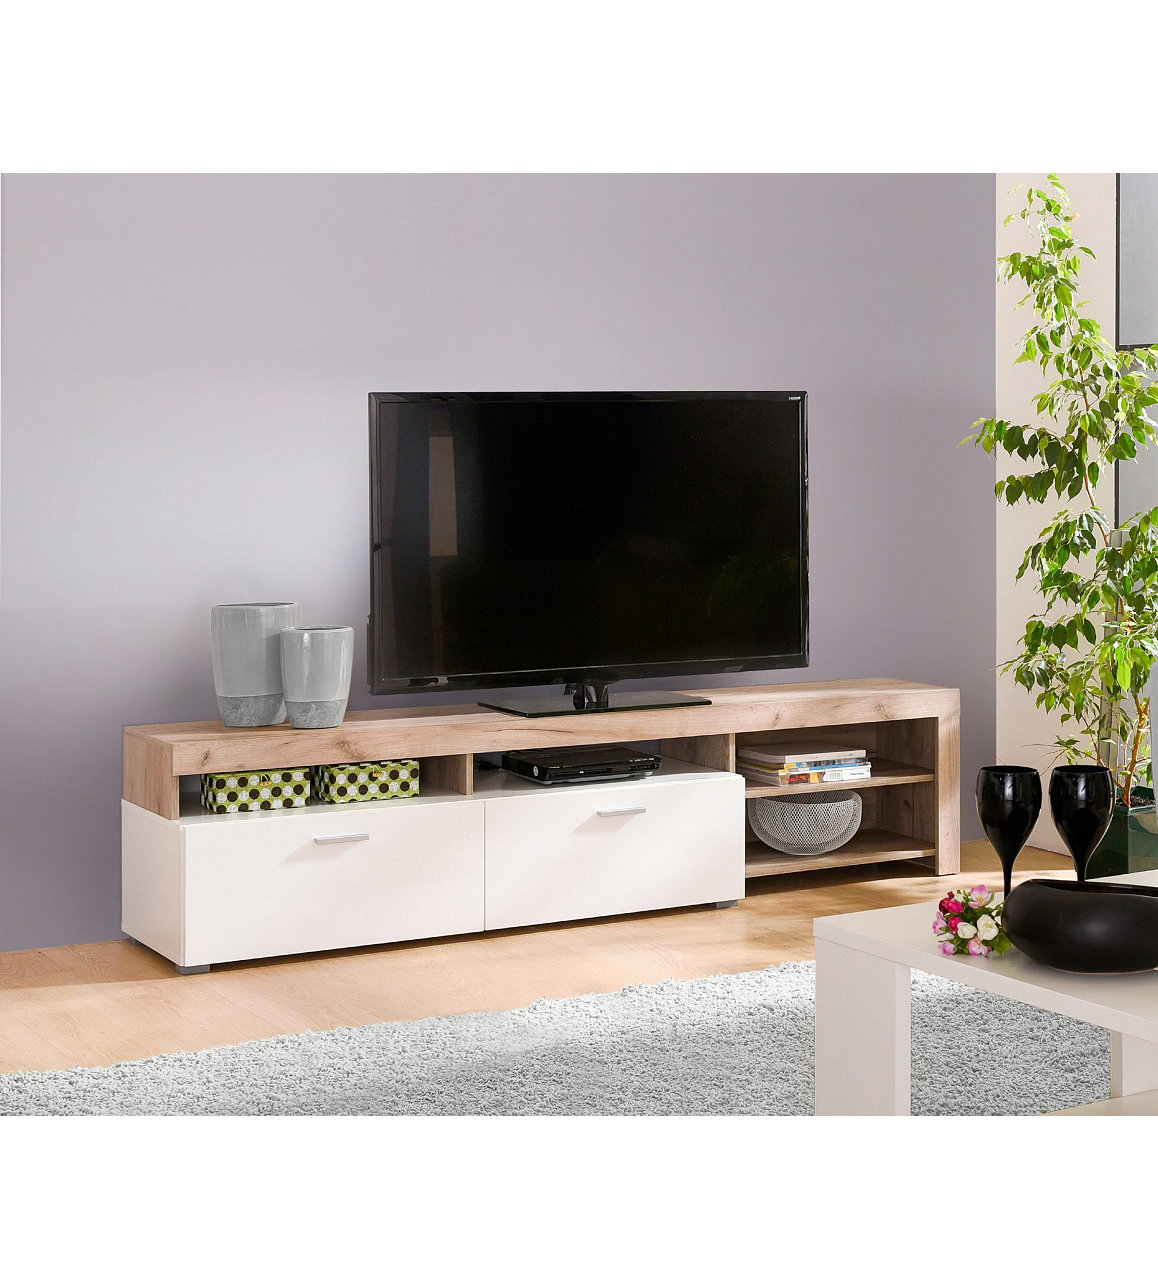 meuble tv blanc et bois id es de d coration int rieure french decor On meuble tv banc bois